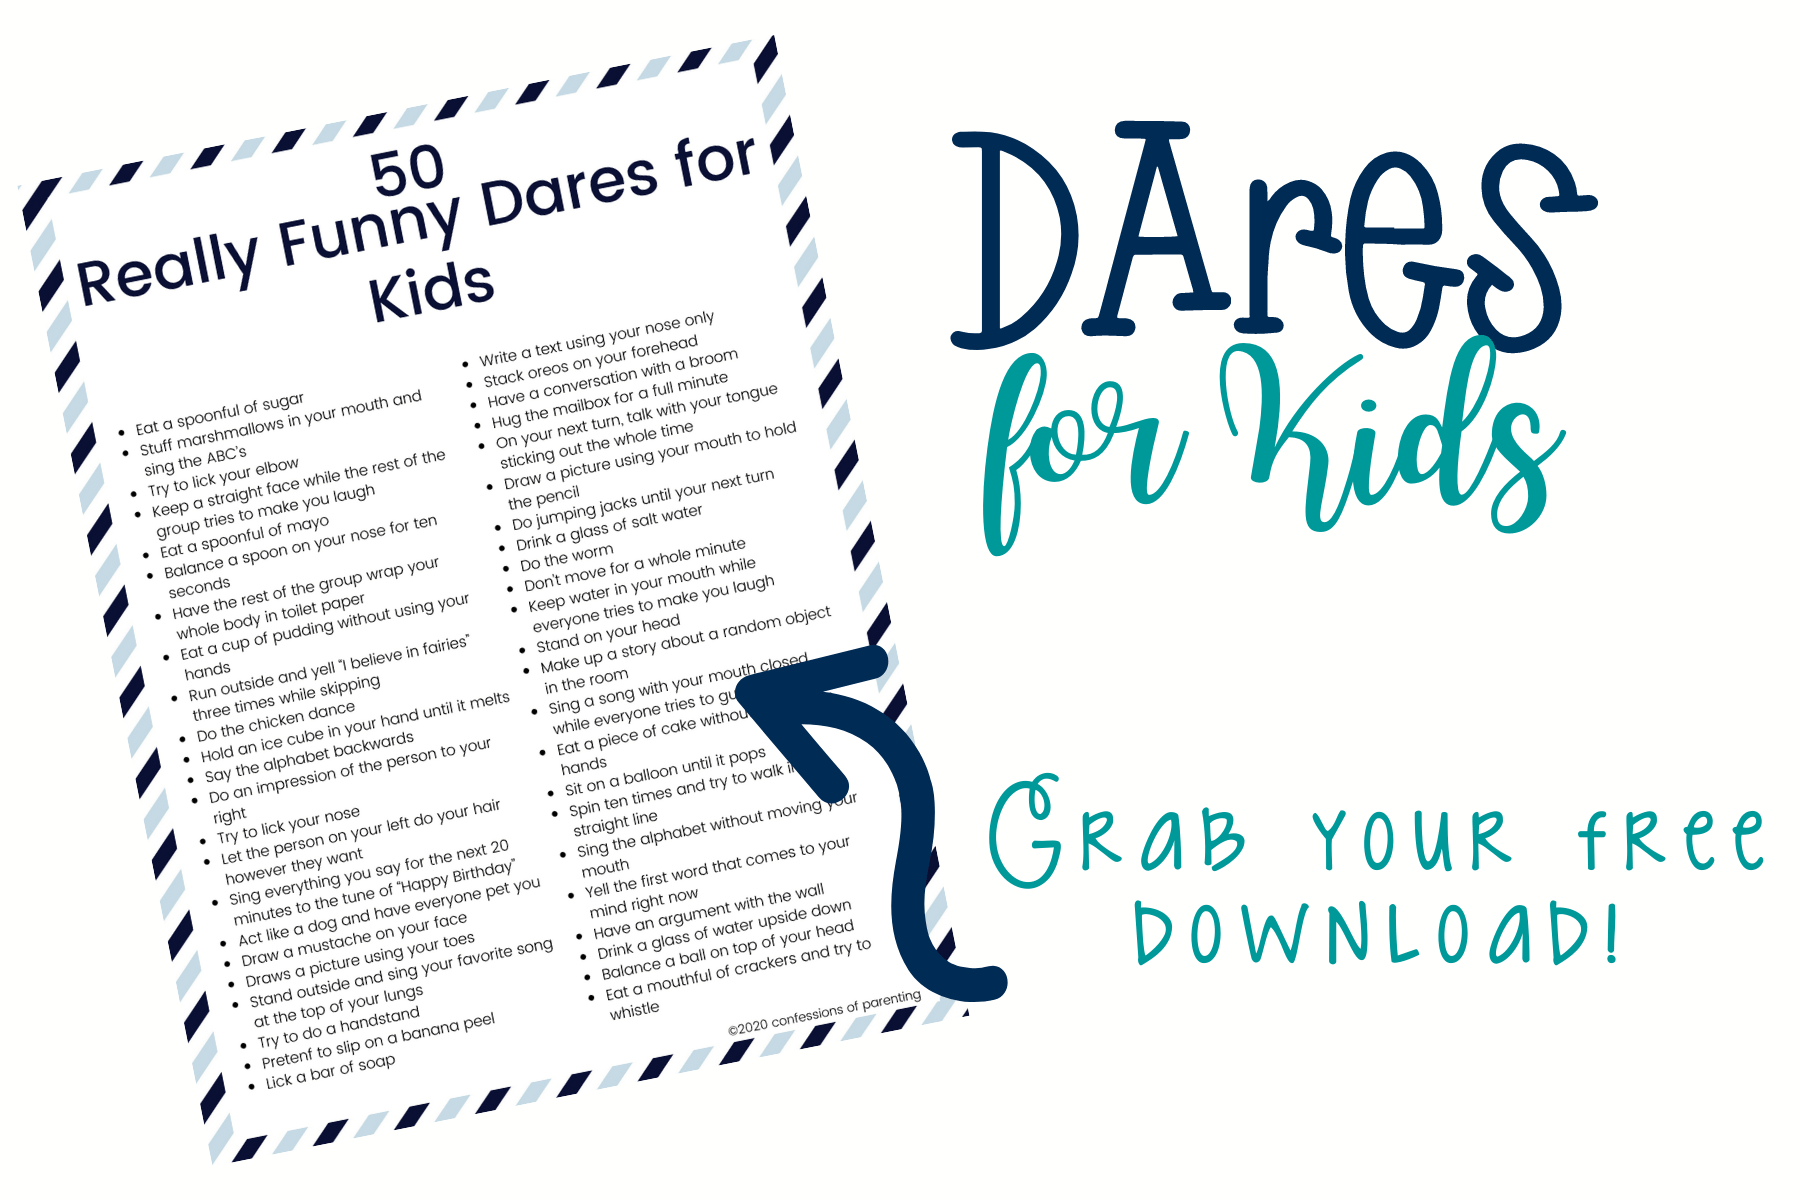 Are you looking for really funny dares for kids that are actually appropriate for kids? We have over 50 of the best dares for kids that they will love doing and that are kid-friendly!